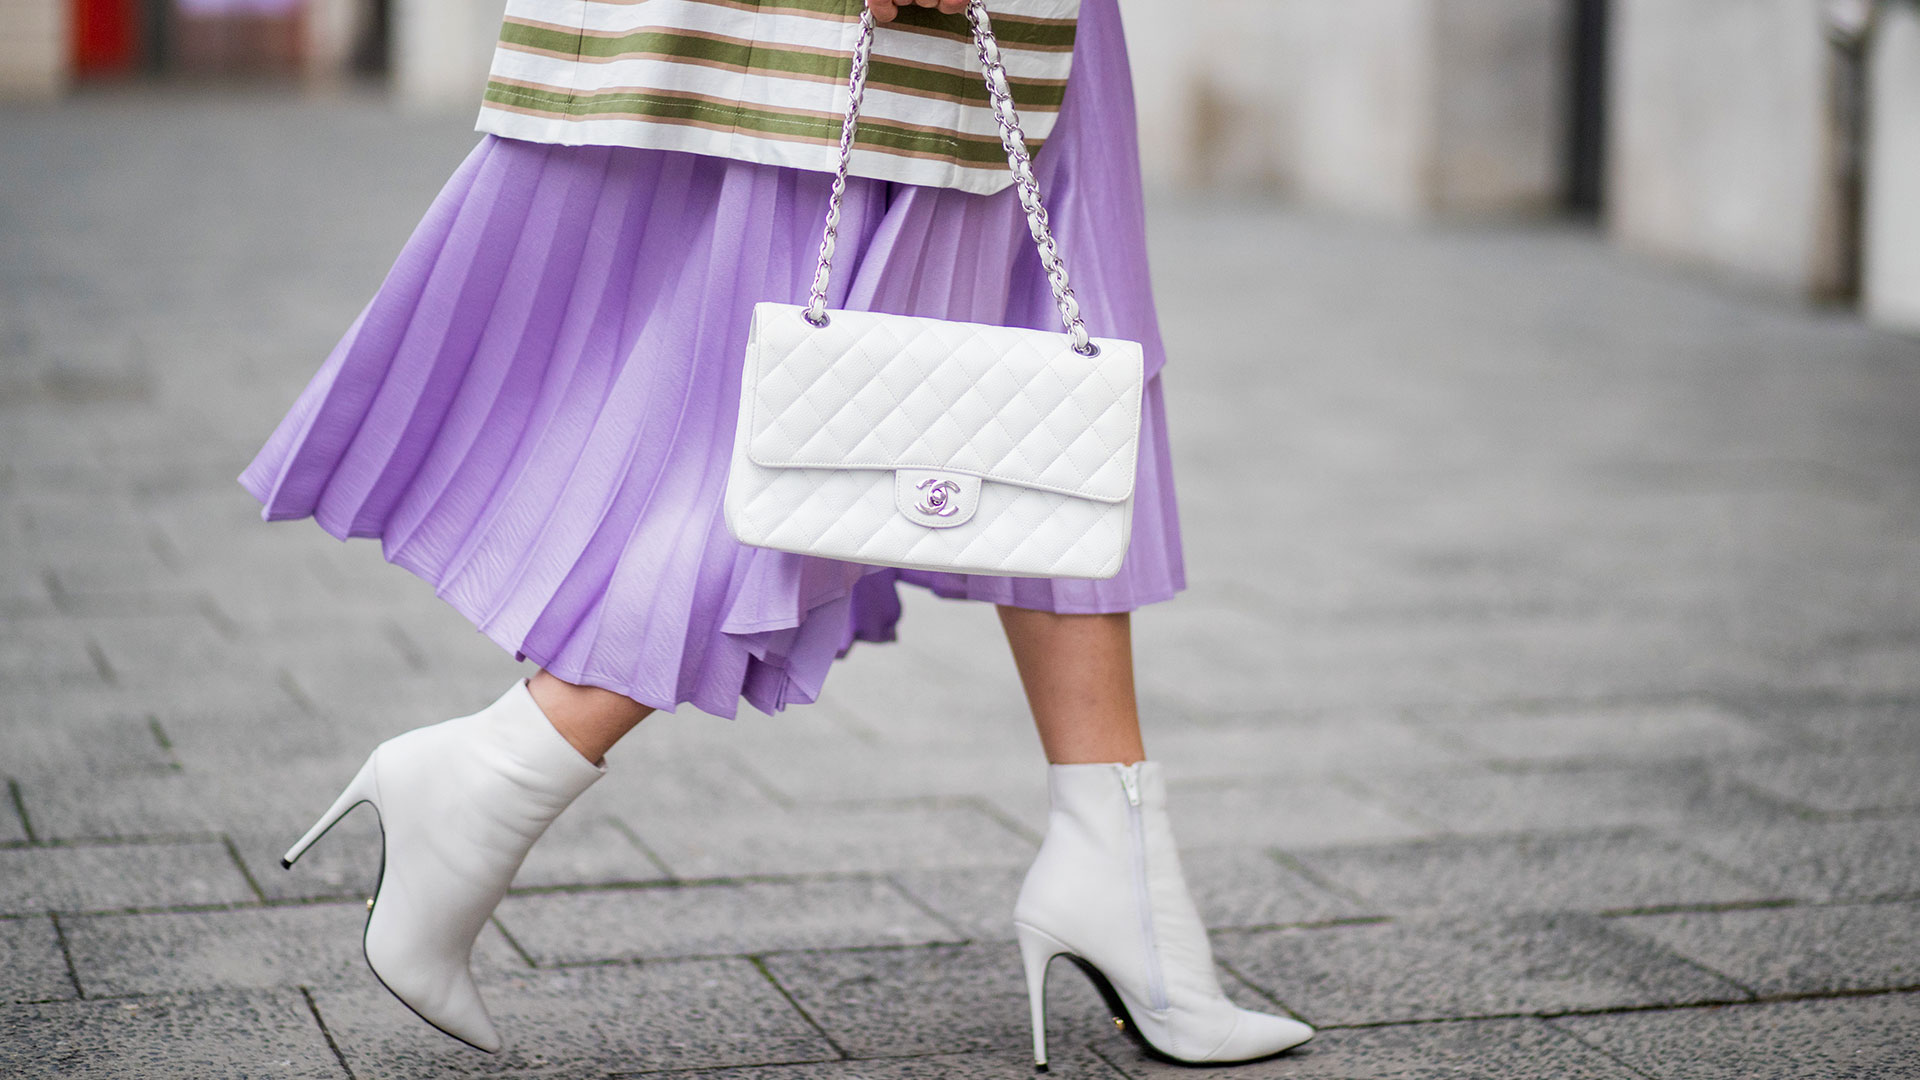 STYLECASTER | Violet Outfit Ideas & Shopping Guide